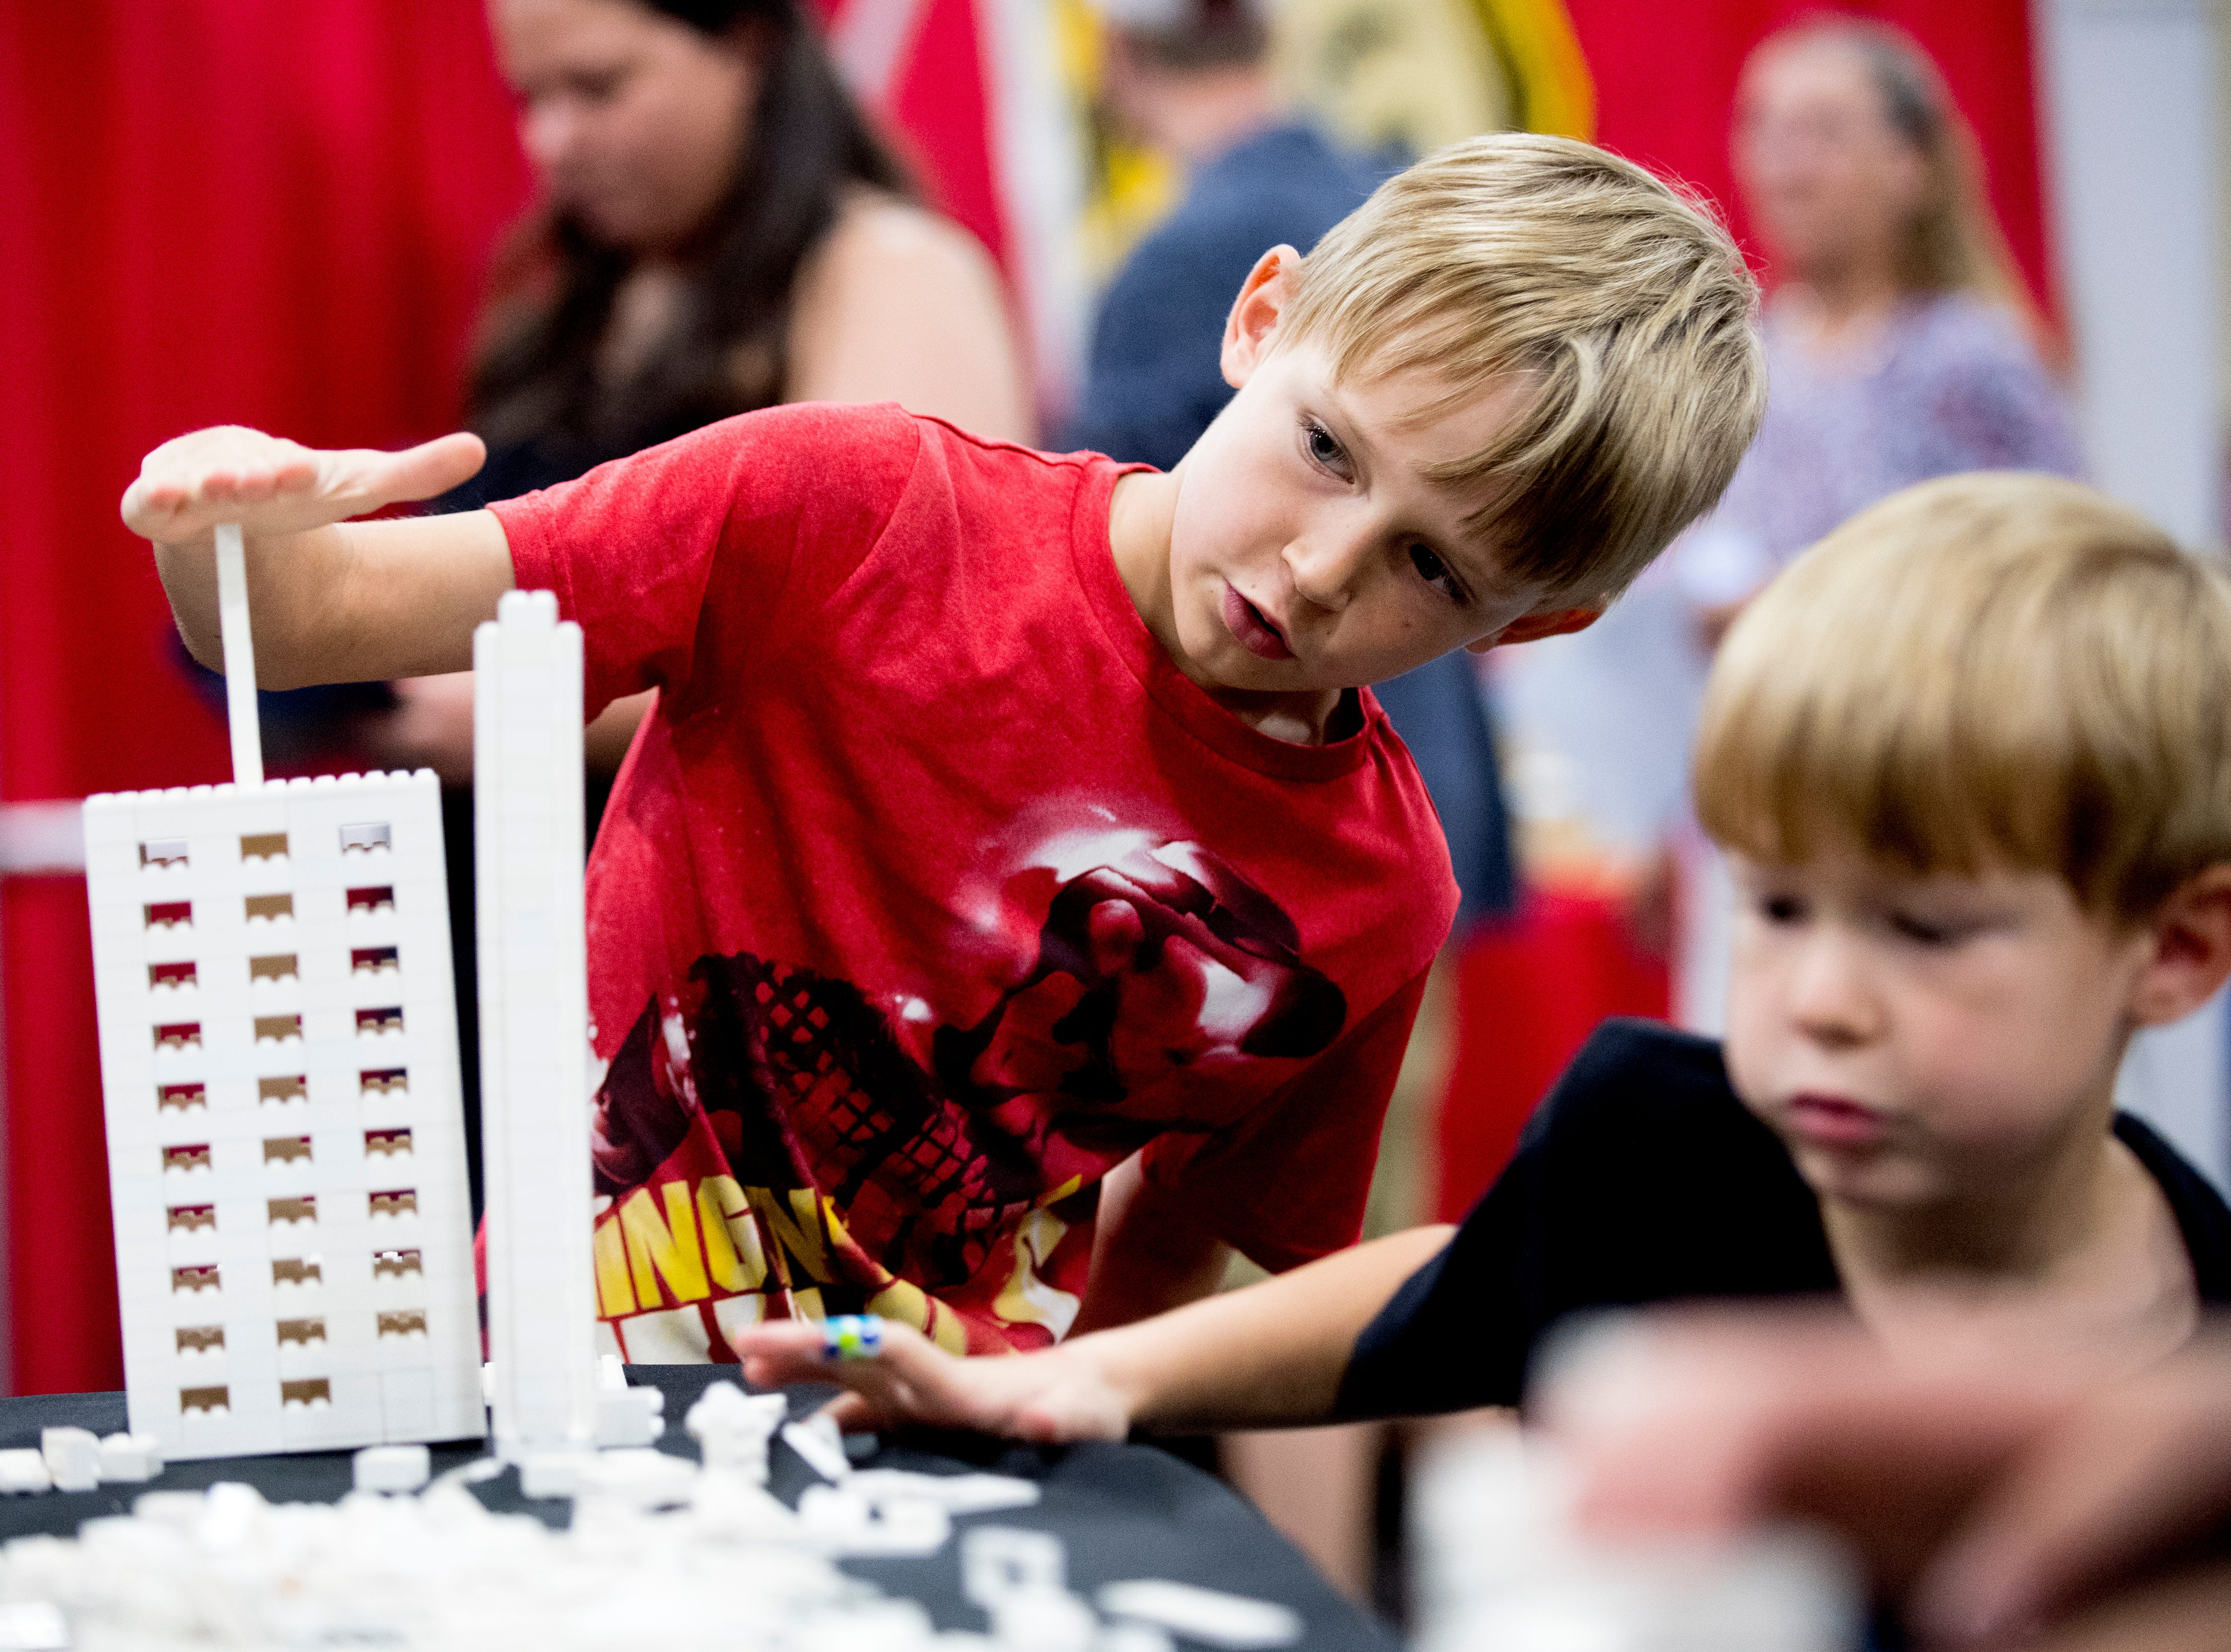 bryce Bolin, 8, of Knoxville, and his brother Blake, 5, build Lego towers at the BrickUniverse Knoxville LEGO Fan Expo in the Knoxville Convention Center in Knoxville, Tennessee on Saturday, August 25, 2018. Life-sized LEGO displays, over 40 world landmarks build to-scale from LEGO as well as castles, trains, and cities and other creations were on display.